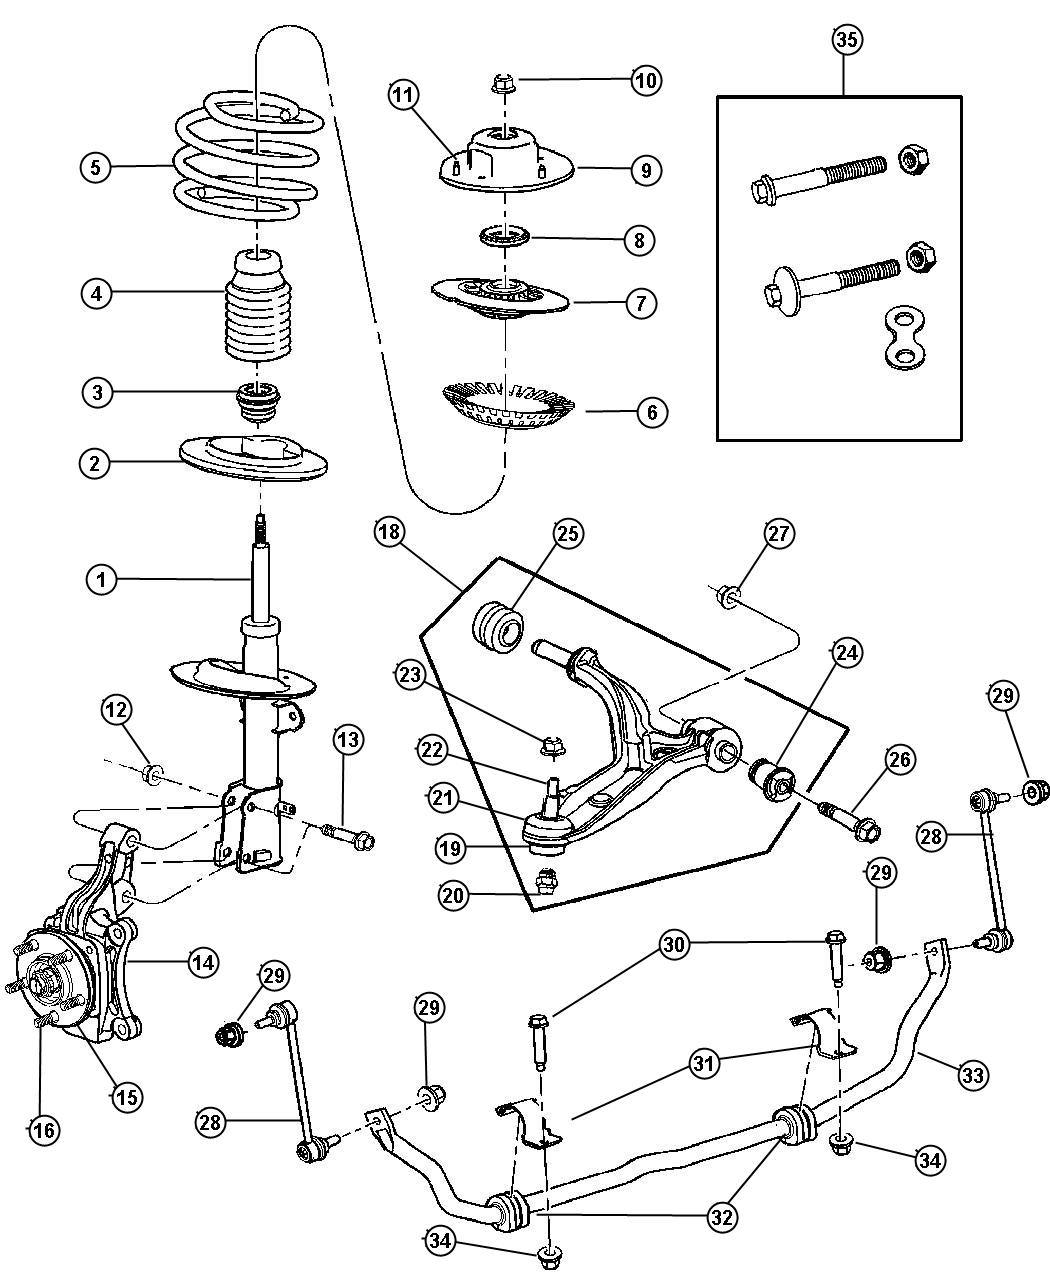 Plymouth Voyager Fuse Box Diagram Wiring Library 2003 Dodge Durango Stereo 2001 Suspension